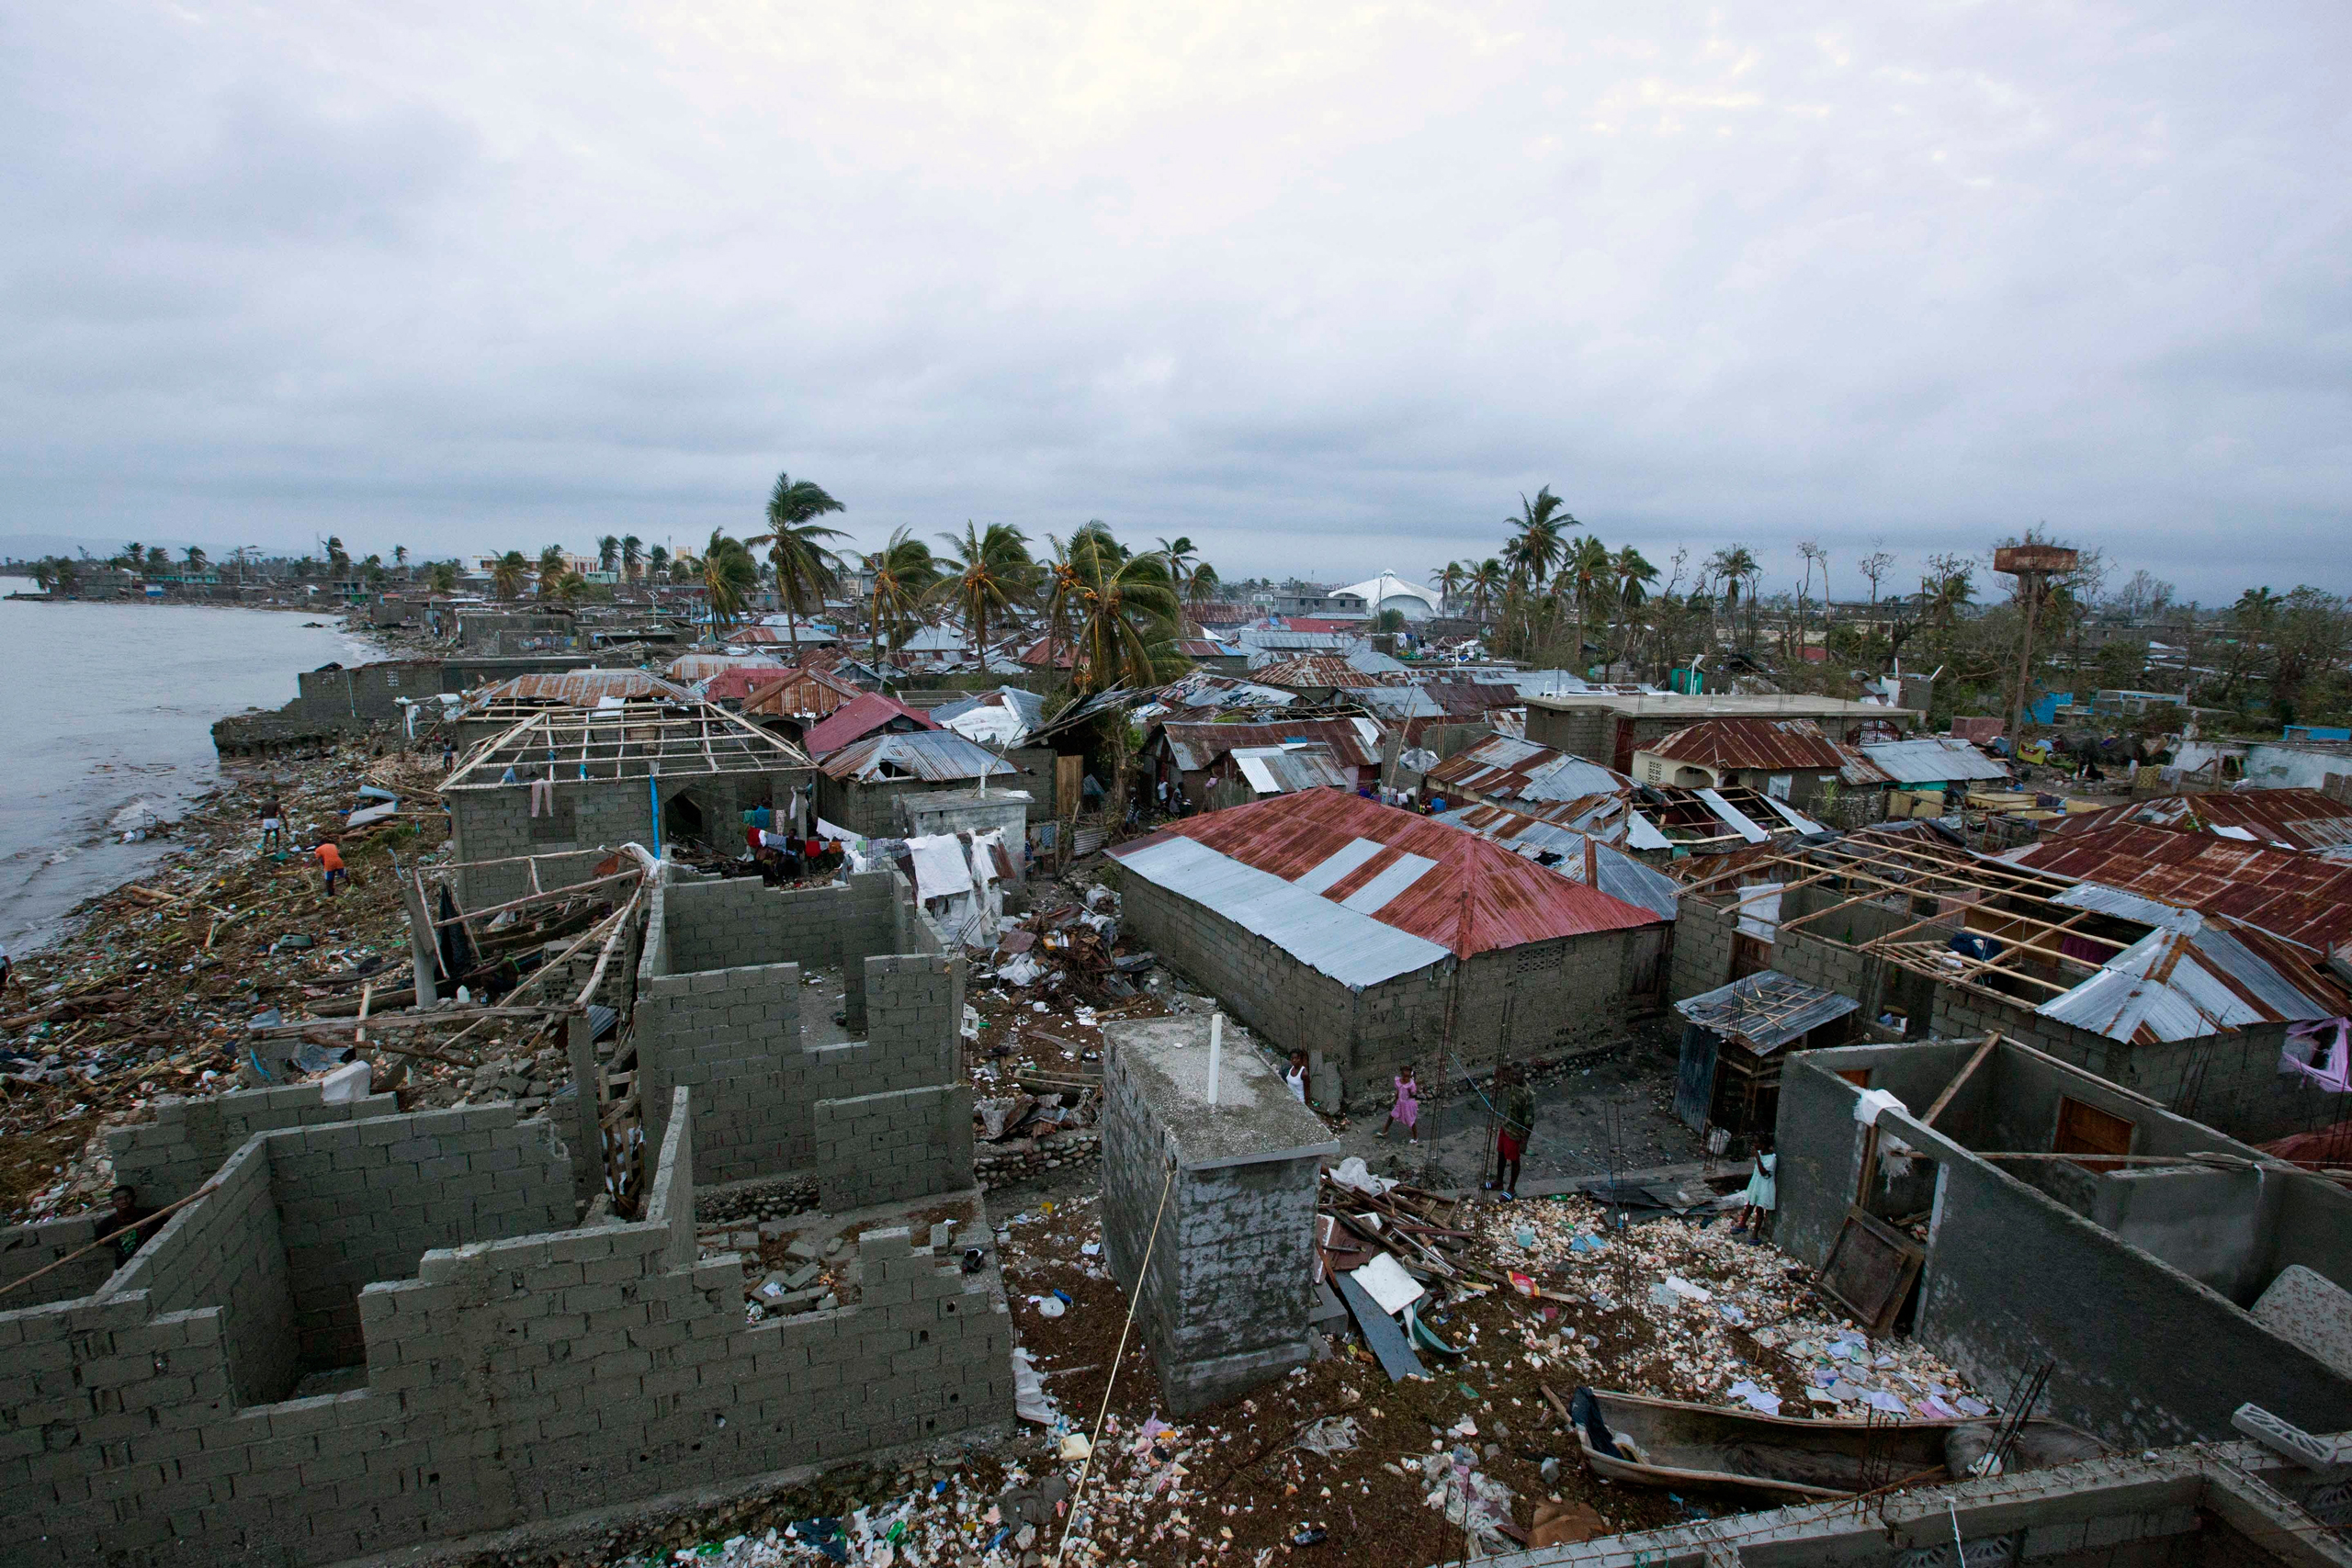 Homes lay in ruins after the passing of Hurricane Matthew in Les Cayes, Haiti, on Oct. 6, 2016.